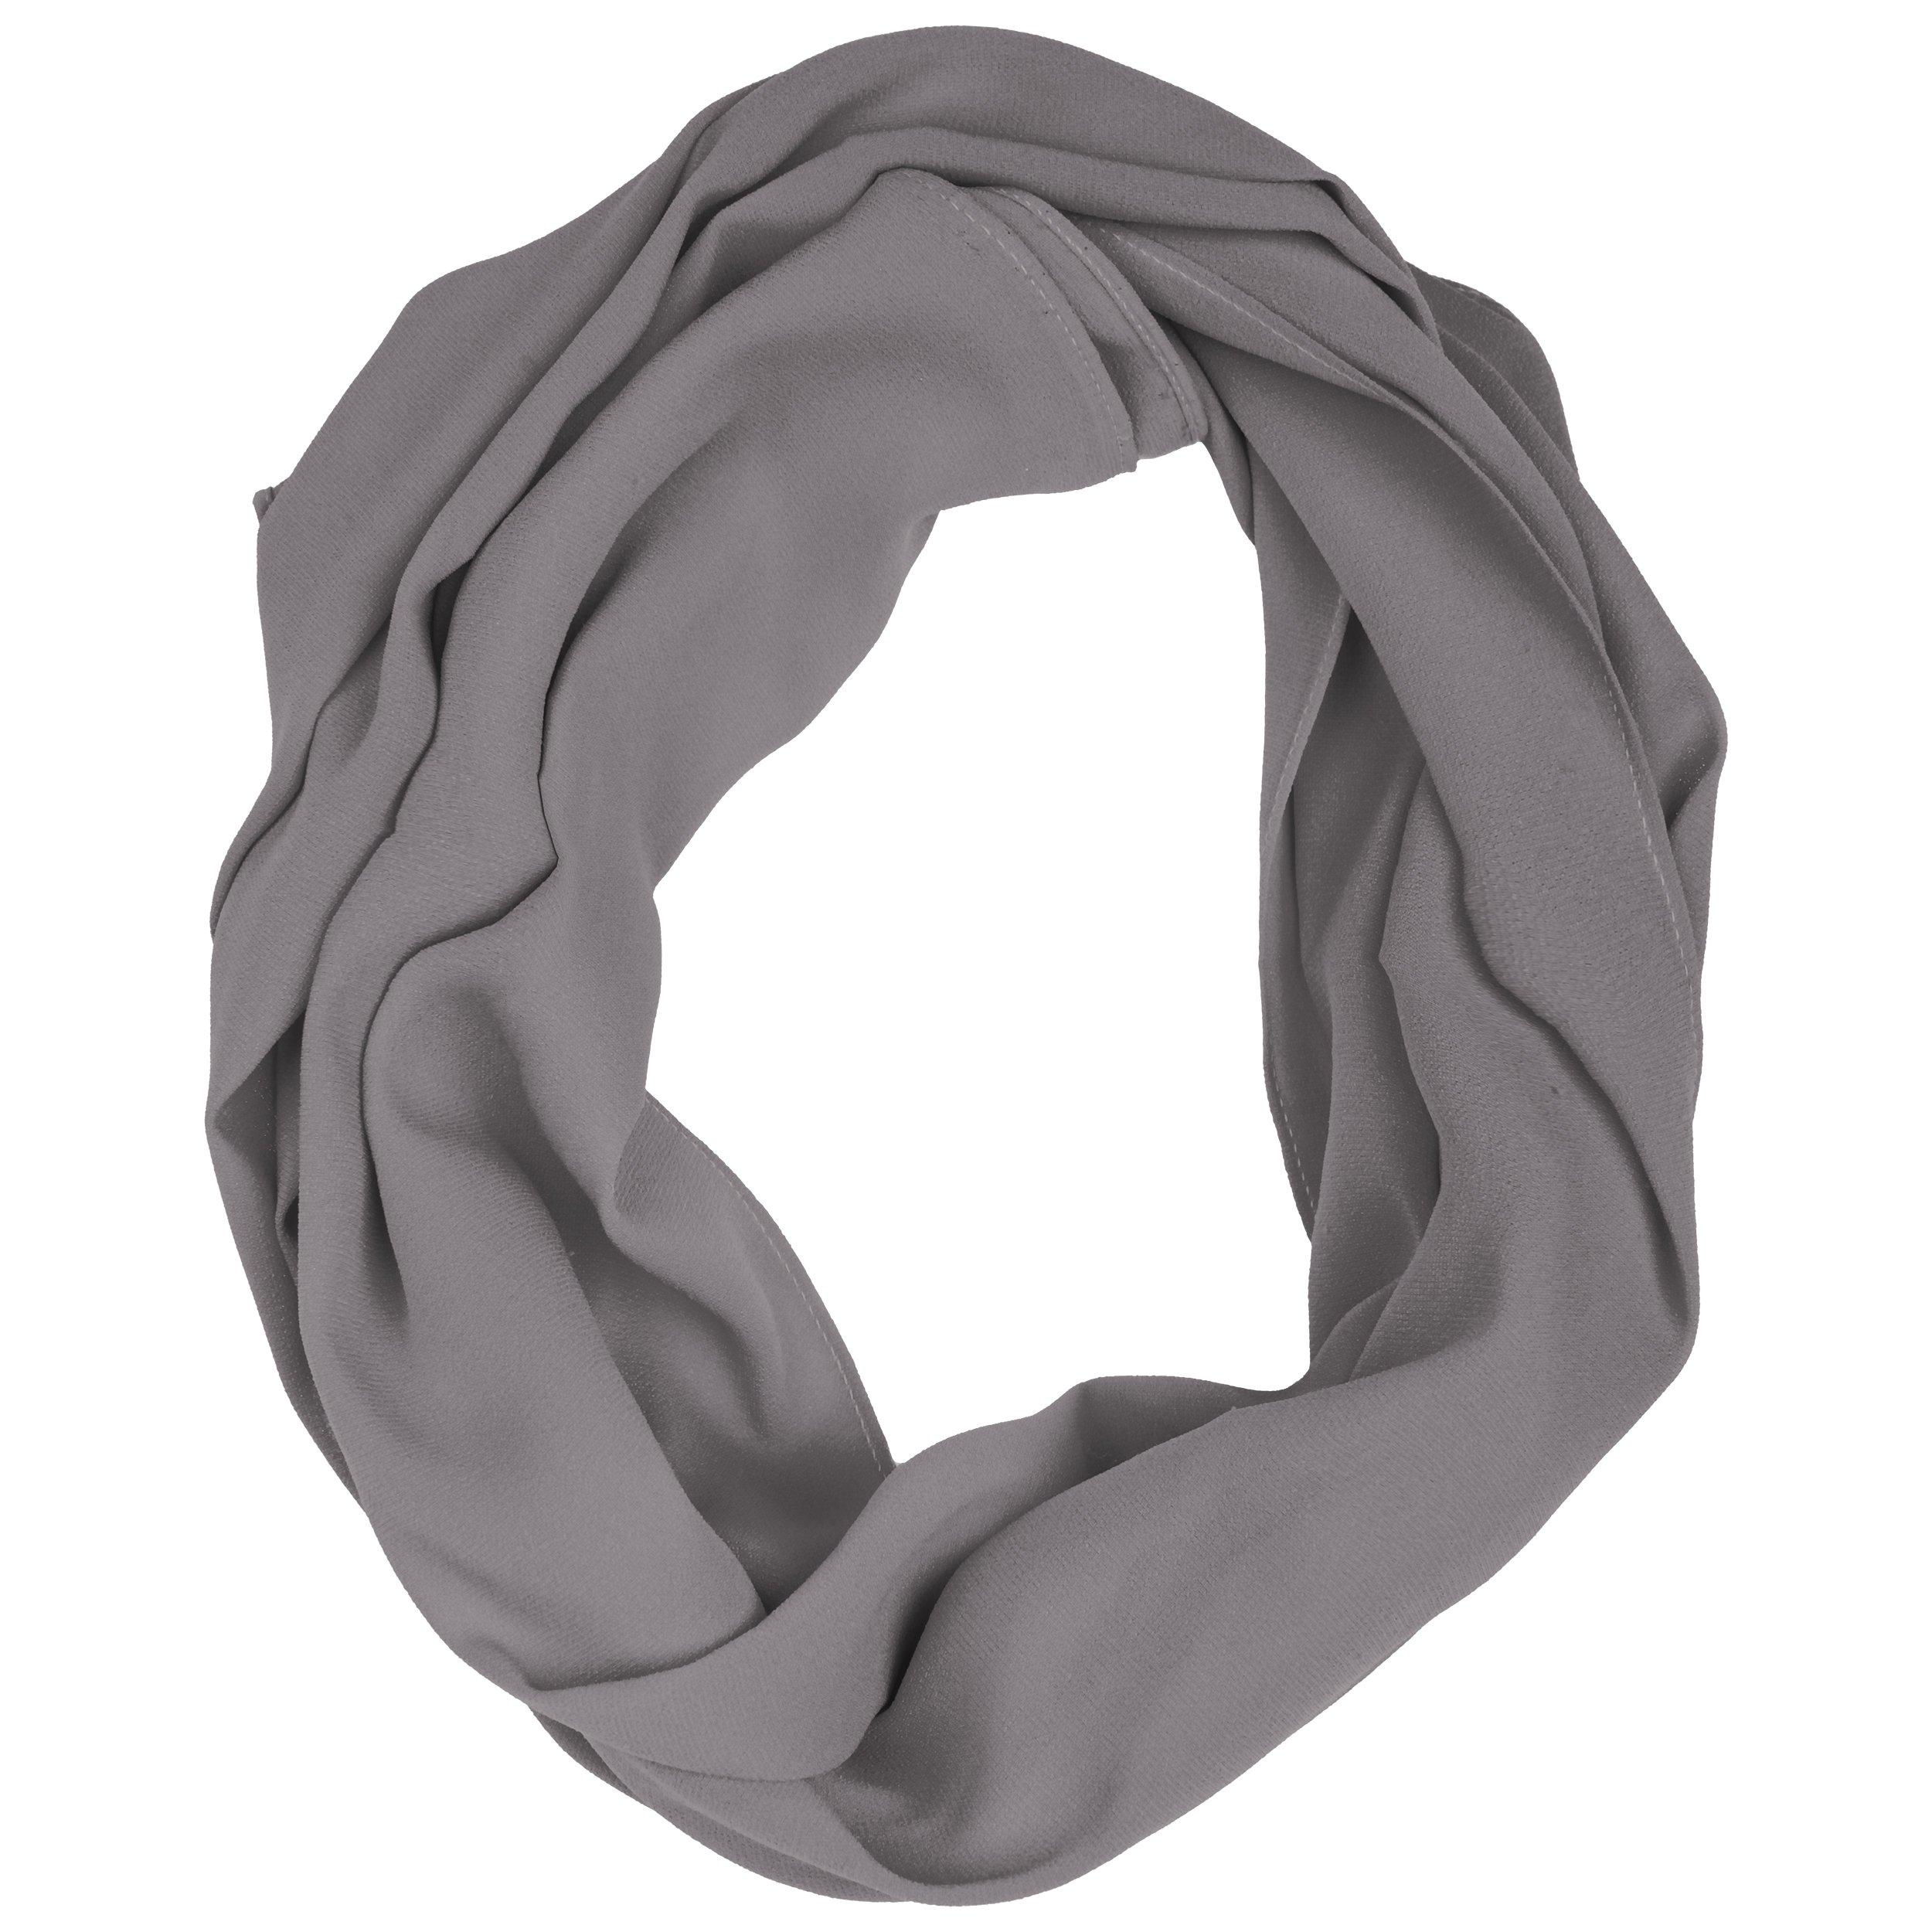 Kushies Nursing Cover Grey Infinity Scarf Privacy Cover for Breastfeeding in Public